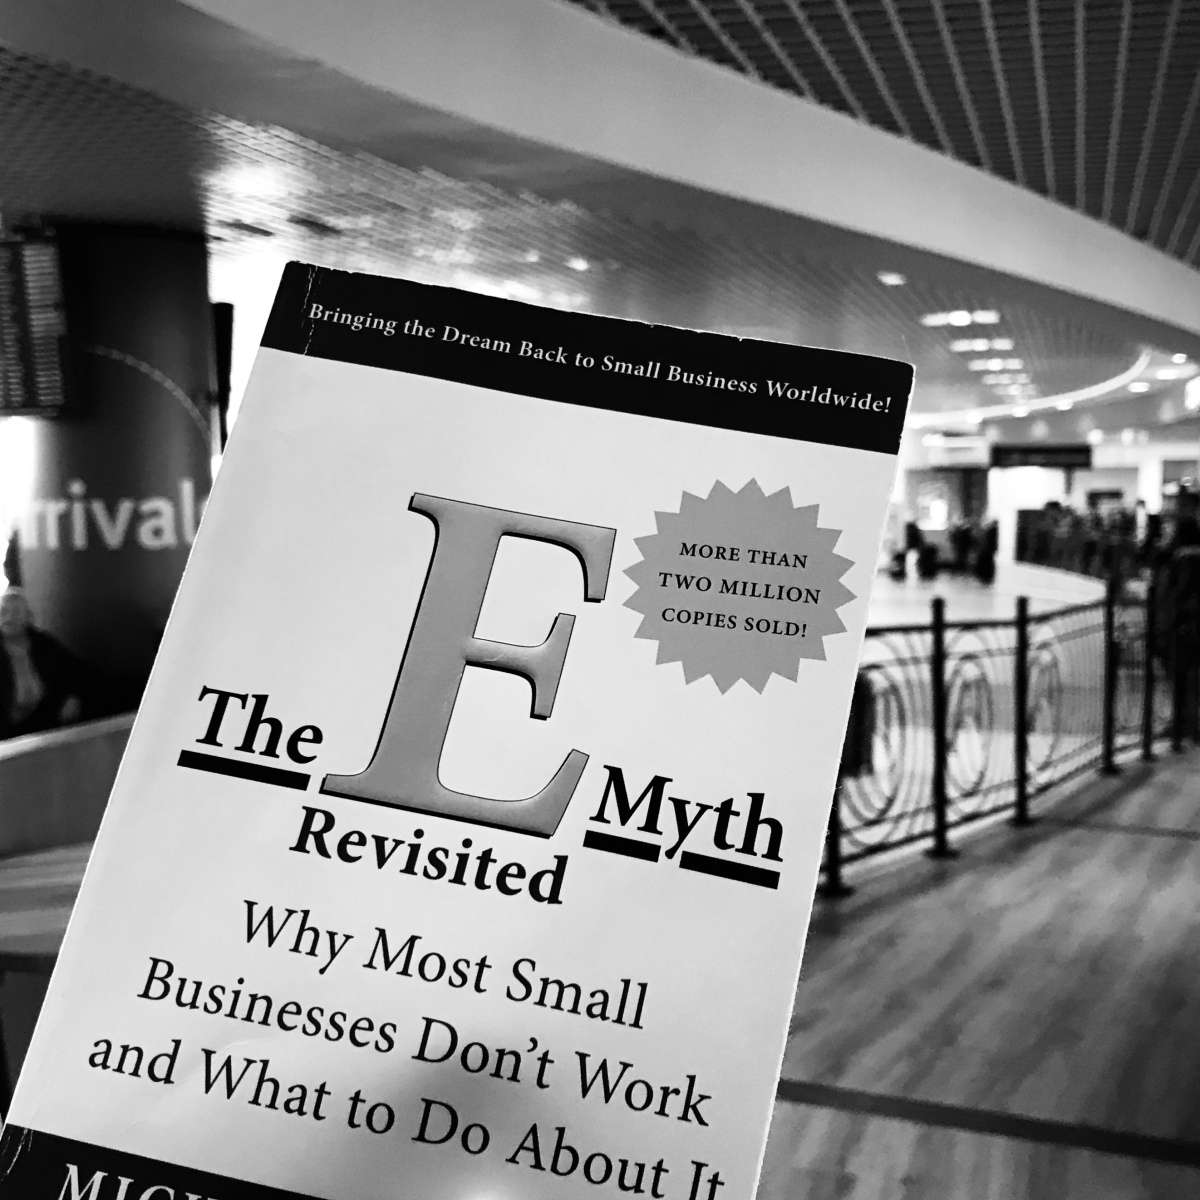 The E-Myth business book by Stephen Gerber